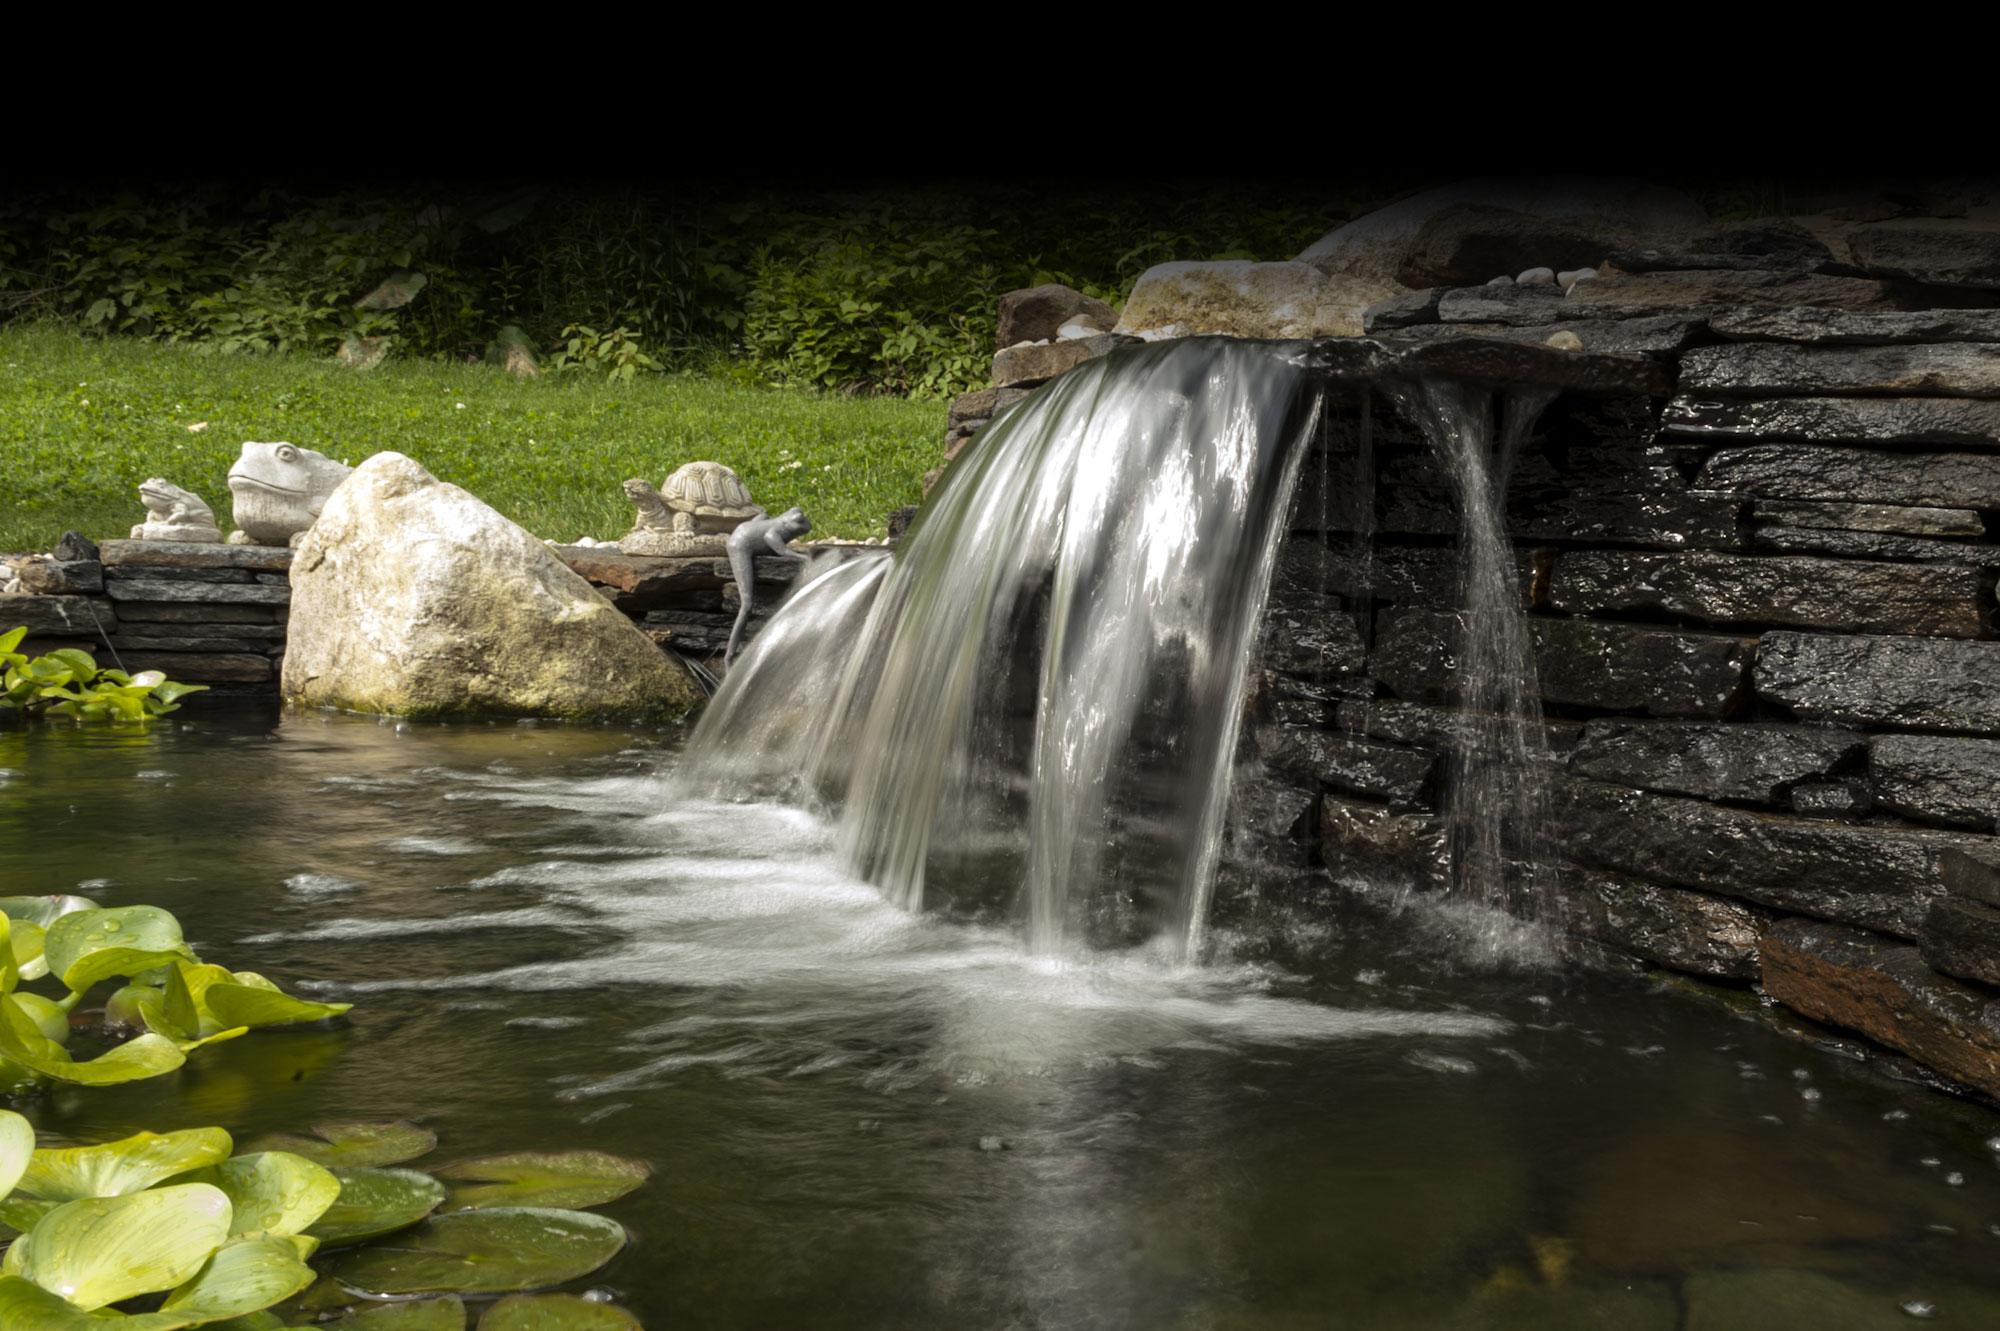 creative stonework and masonry with a waterfall, western massachusetts